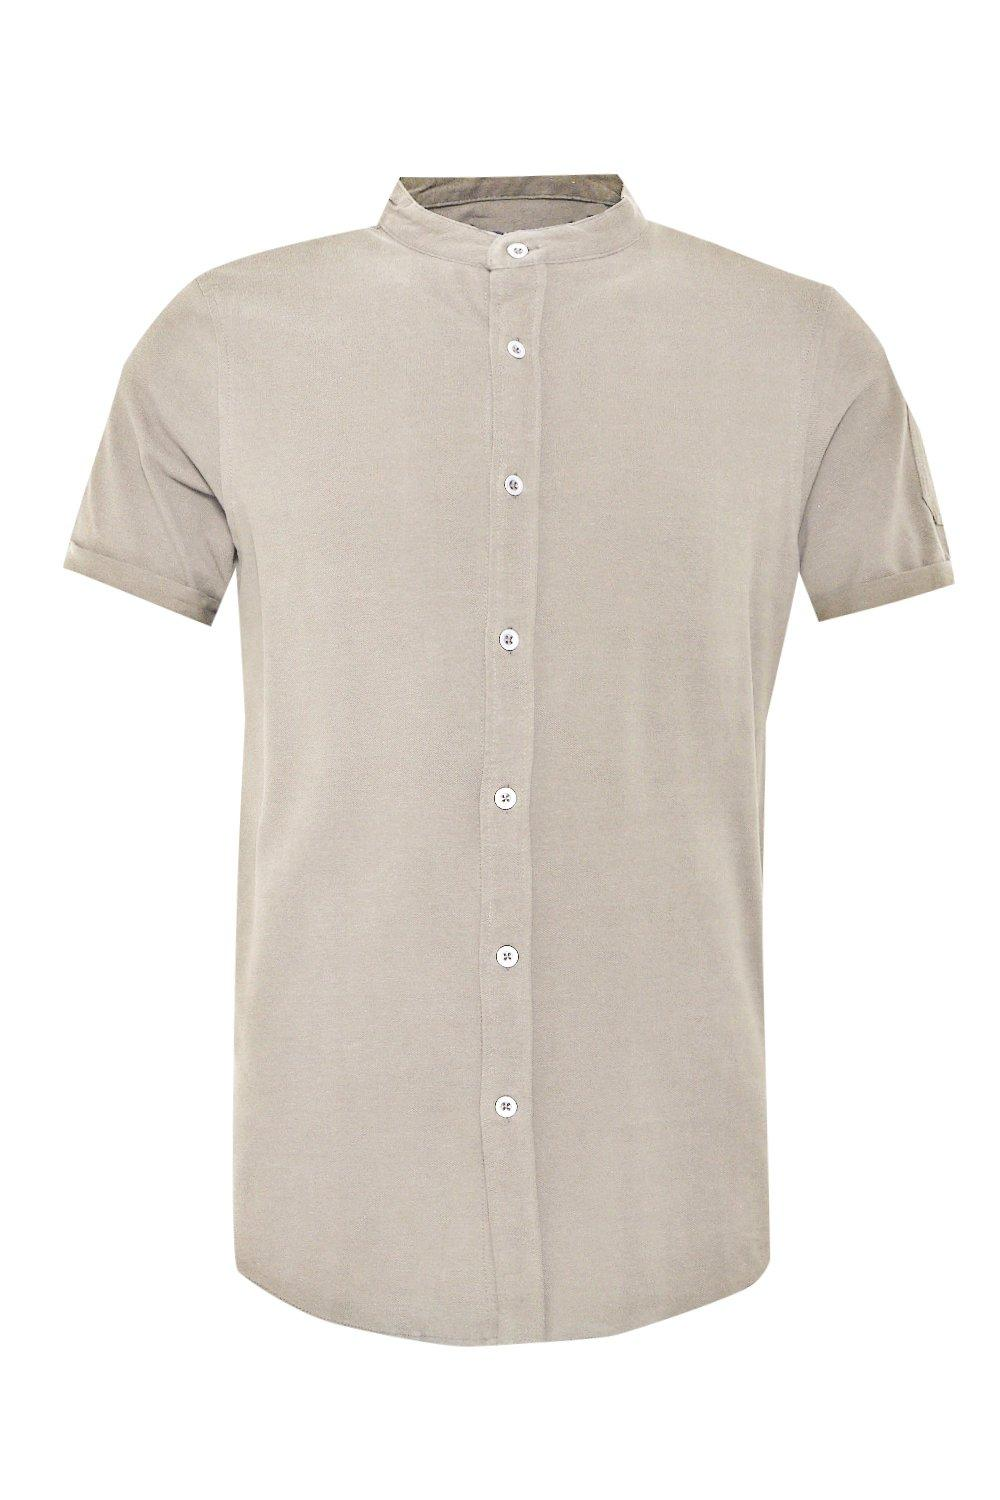 boohooMAN stone Short Sleeve Granded Shirt With Pocket Detail